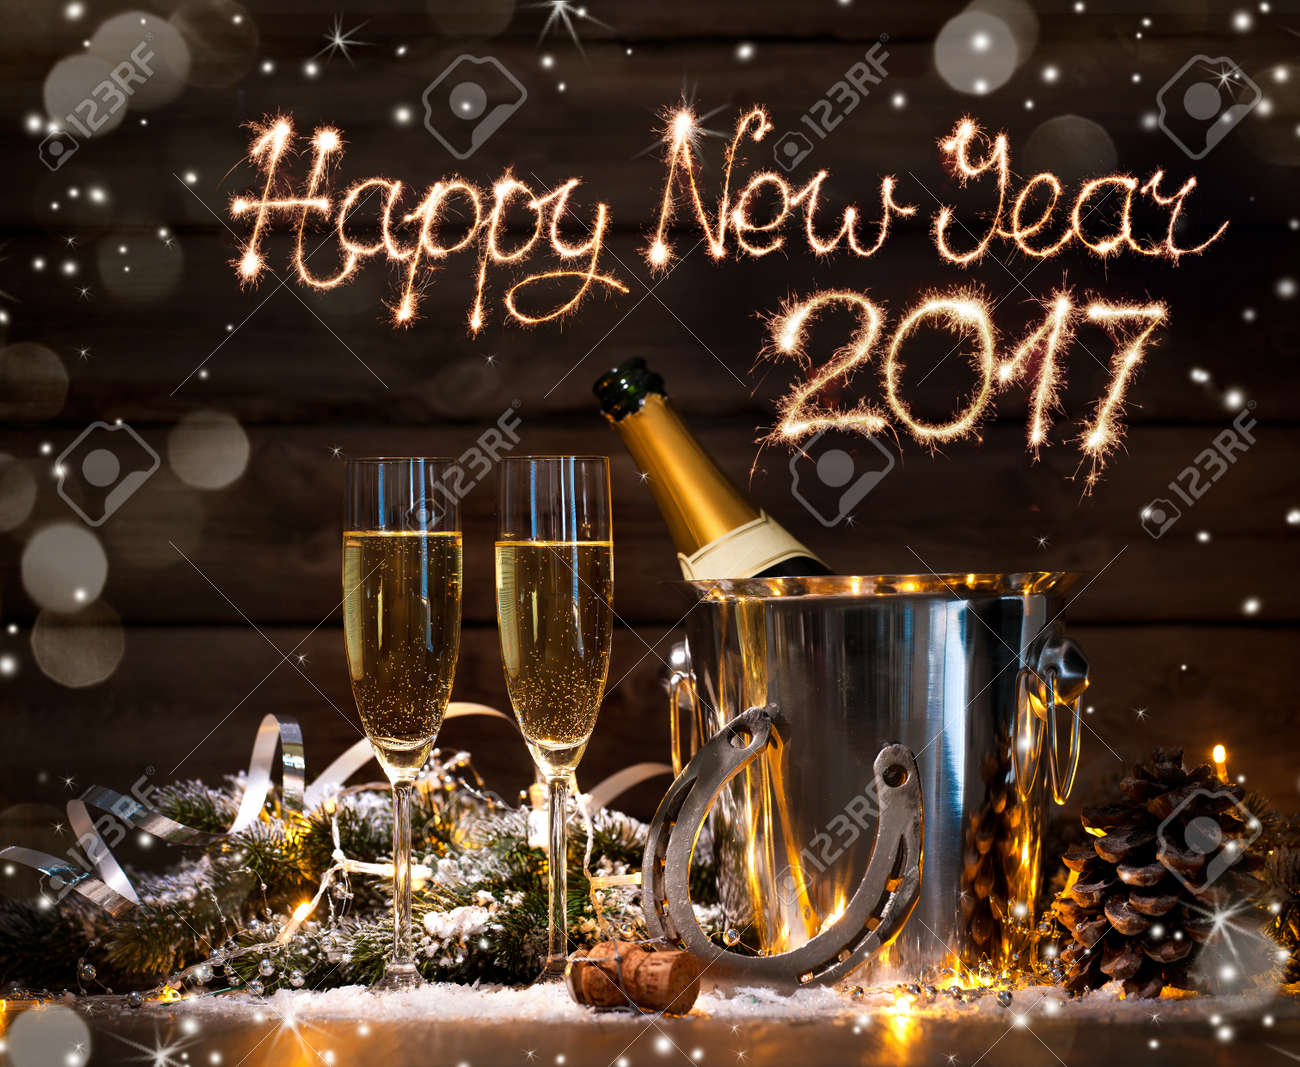 New Years Eve celebration background with pair of flutes and bottle of champagne in  bucket  and a horseshoe as lucky charm Stock Photo - 57247032